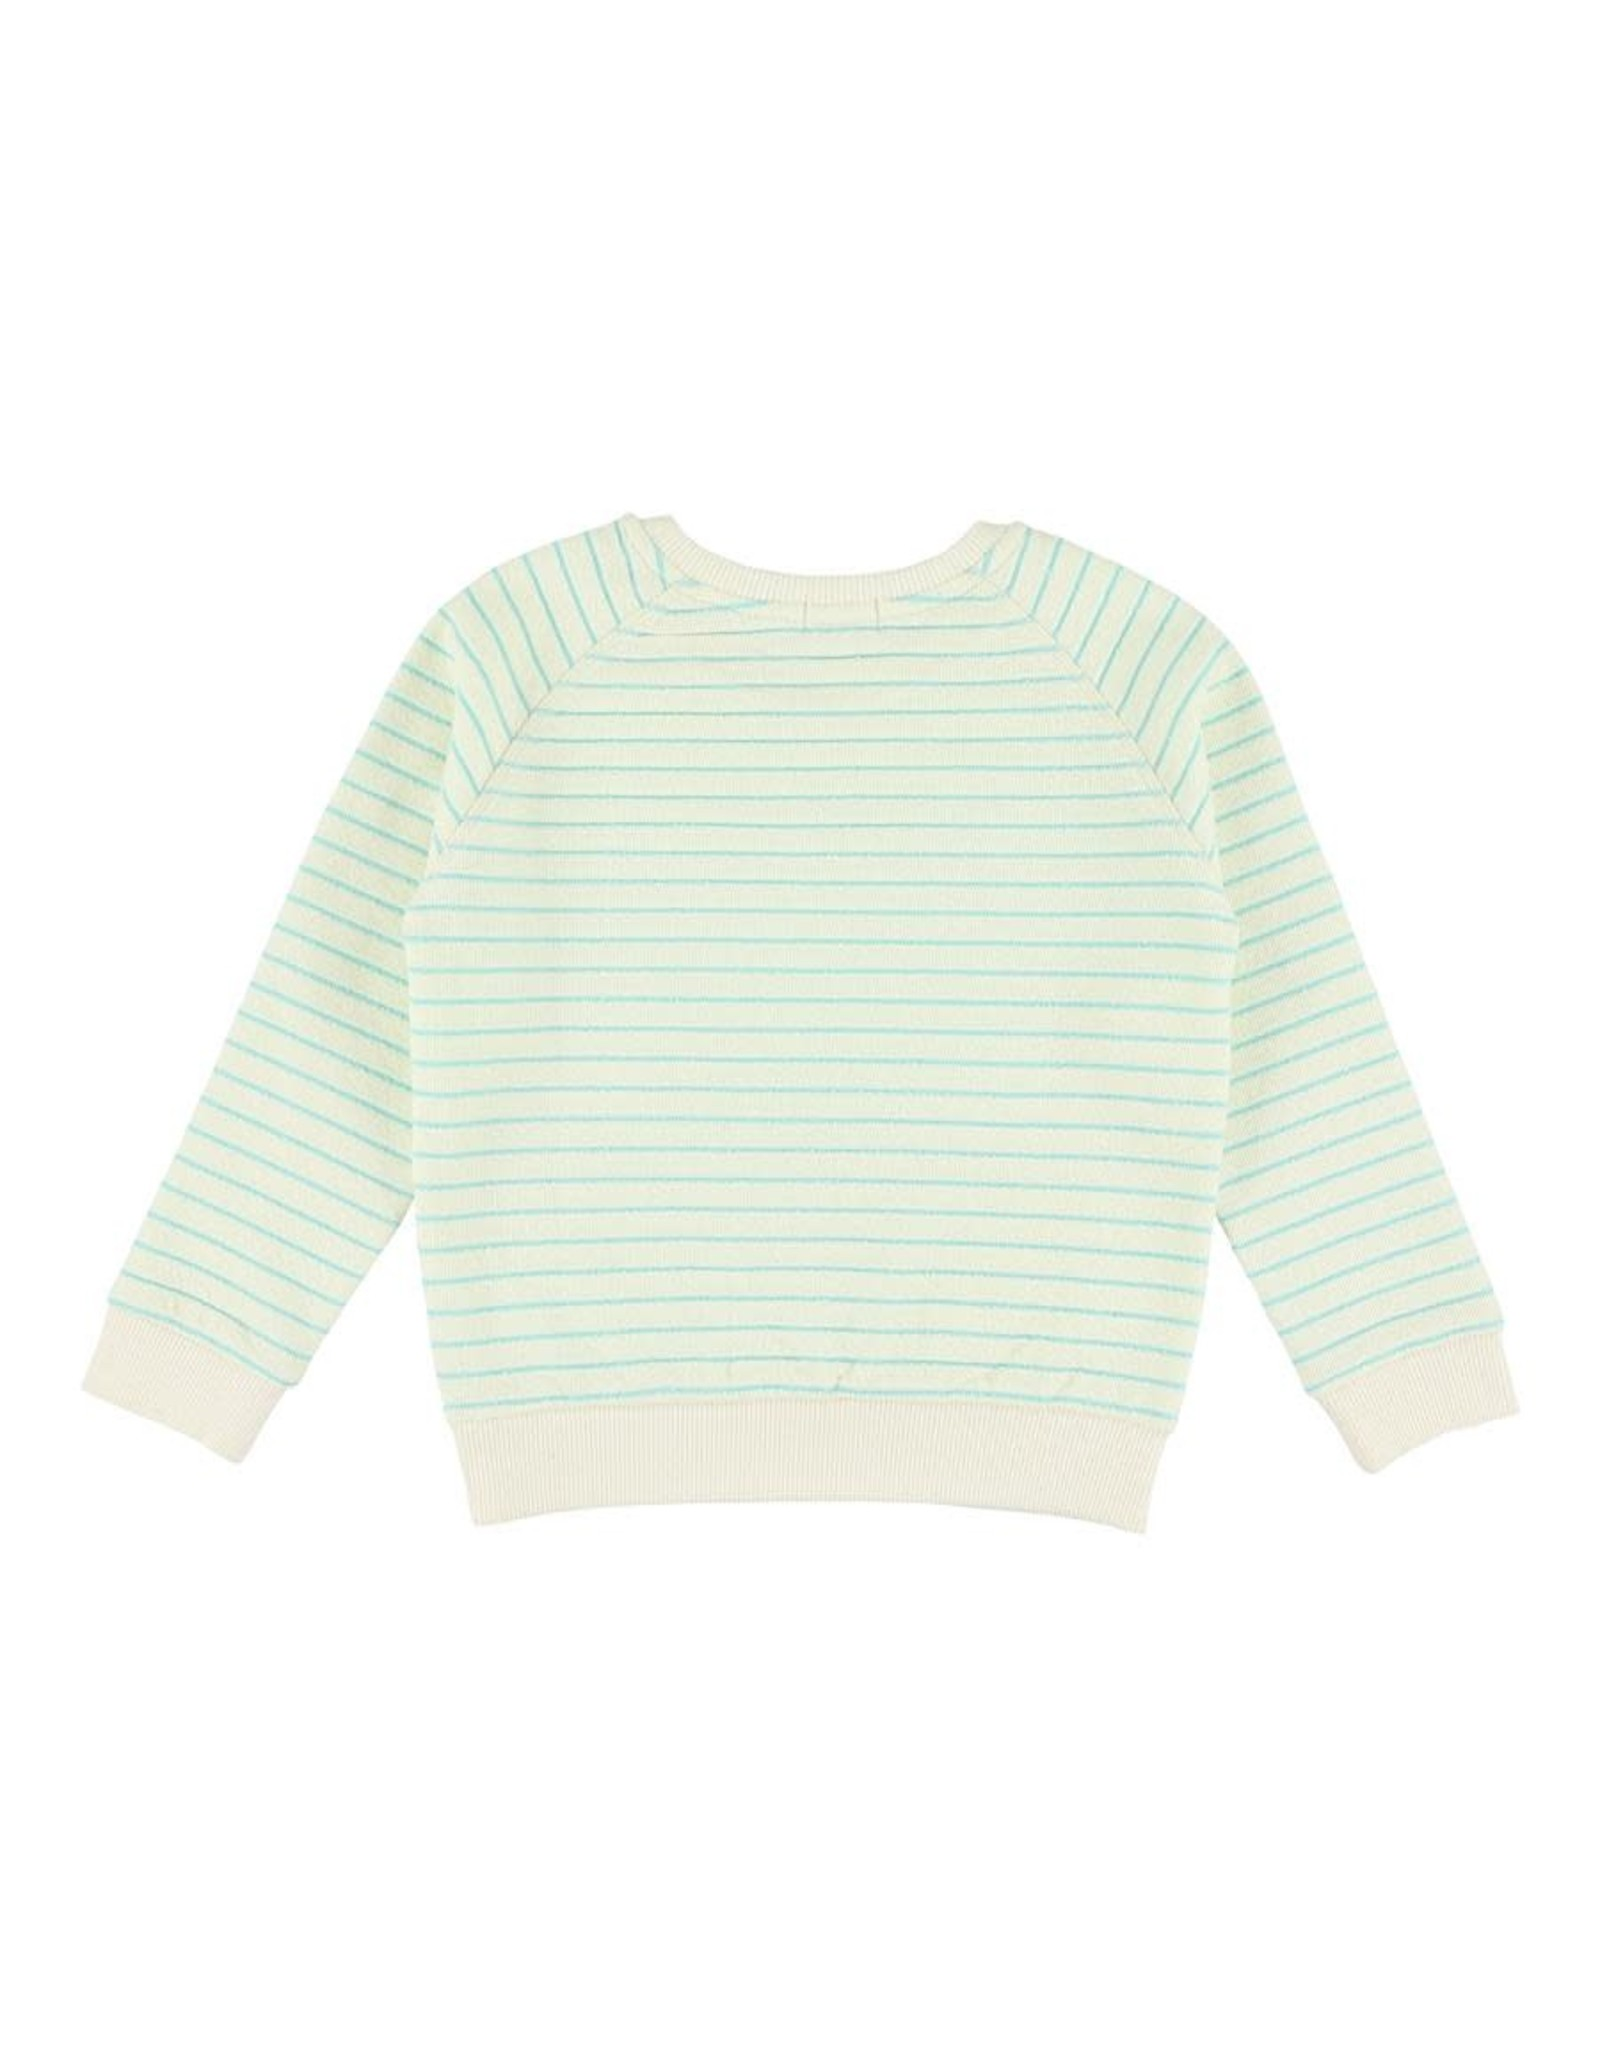 Morley Morley SS21 Jaws Scott Turquoise sweater